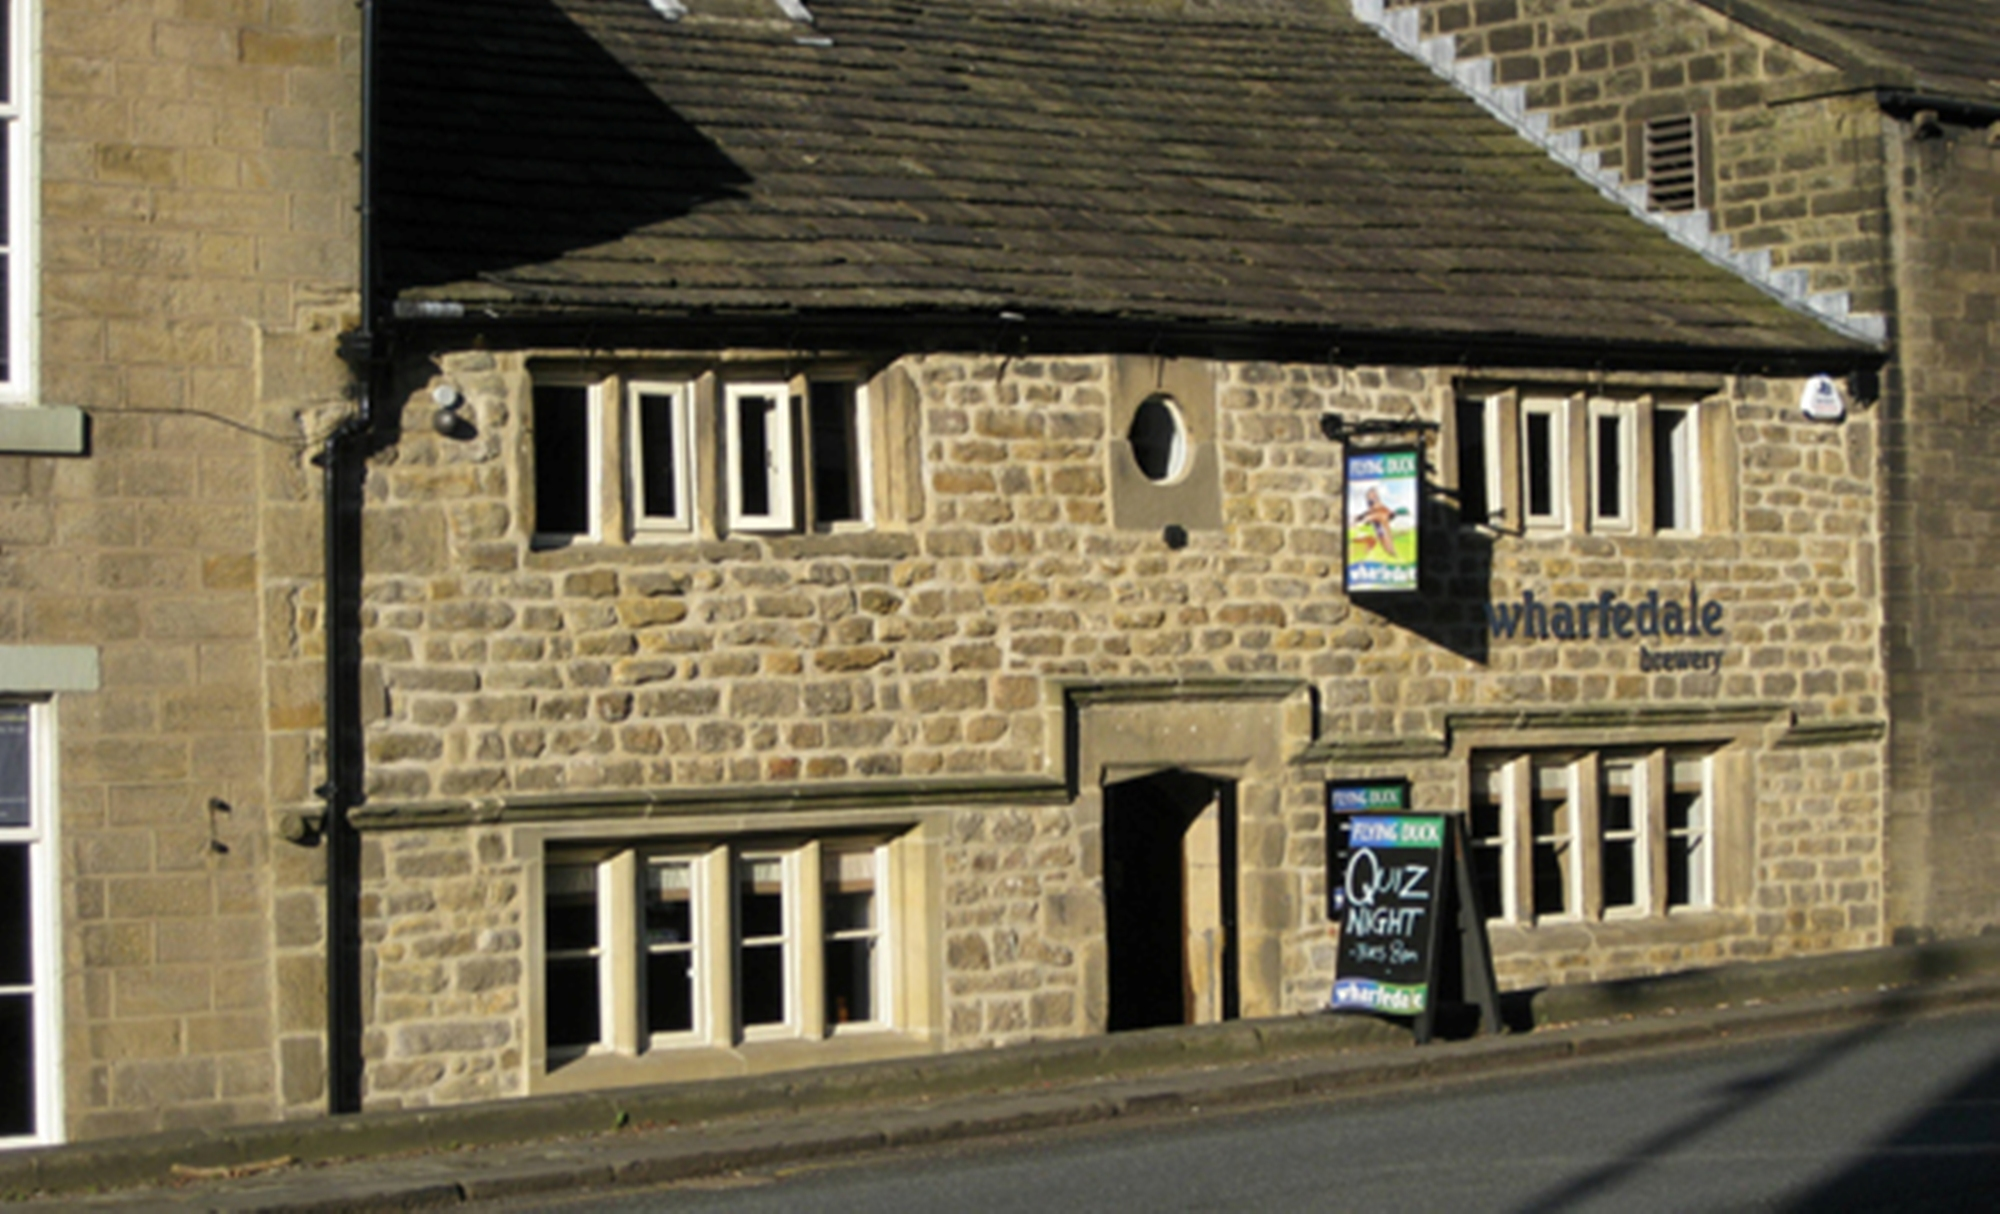 The Flying Duck in Ilkley which houses the Wharfedale Brewery